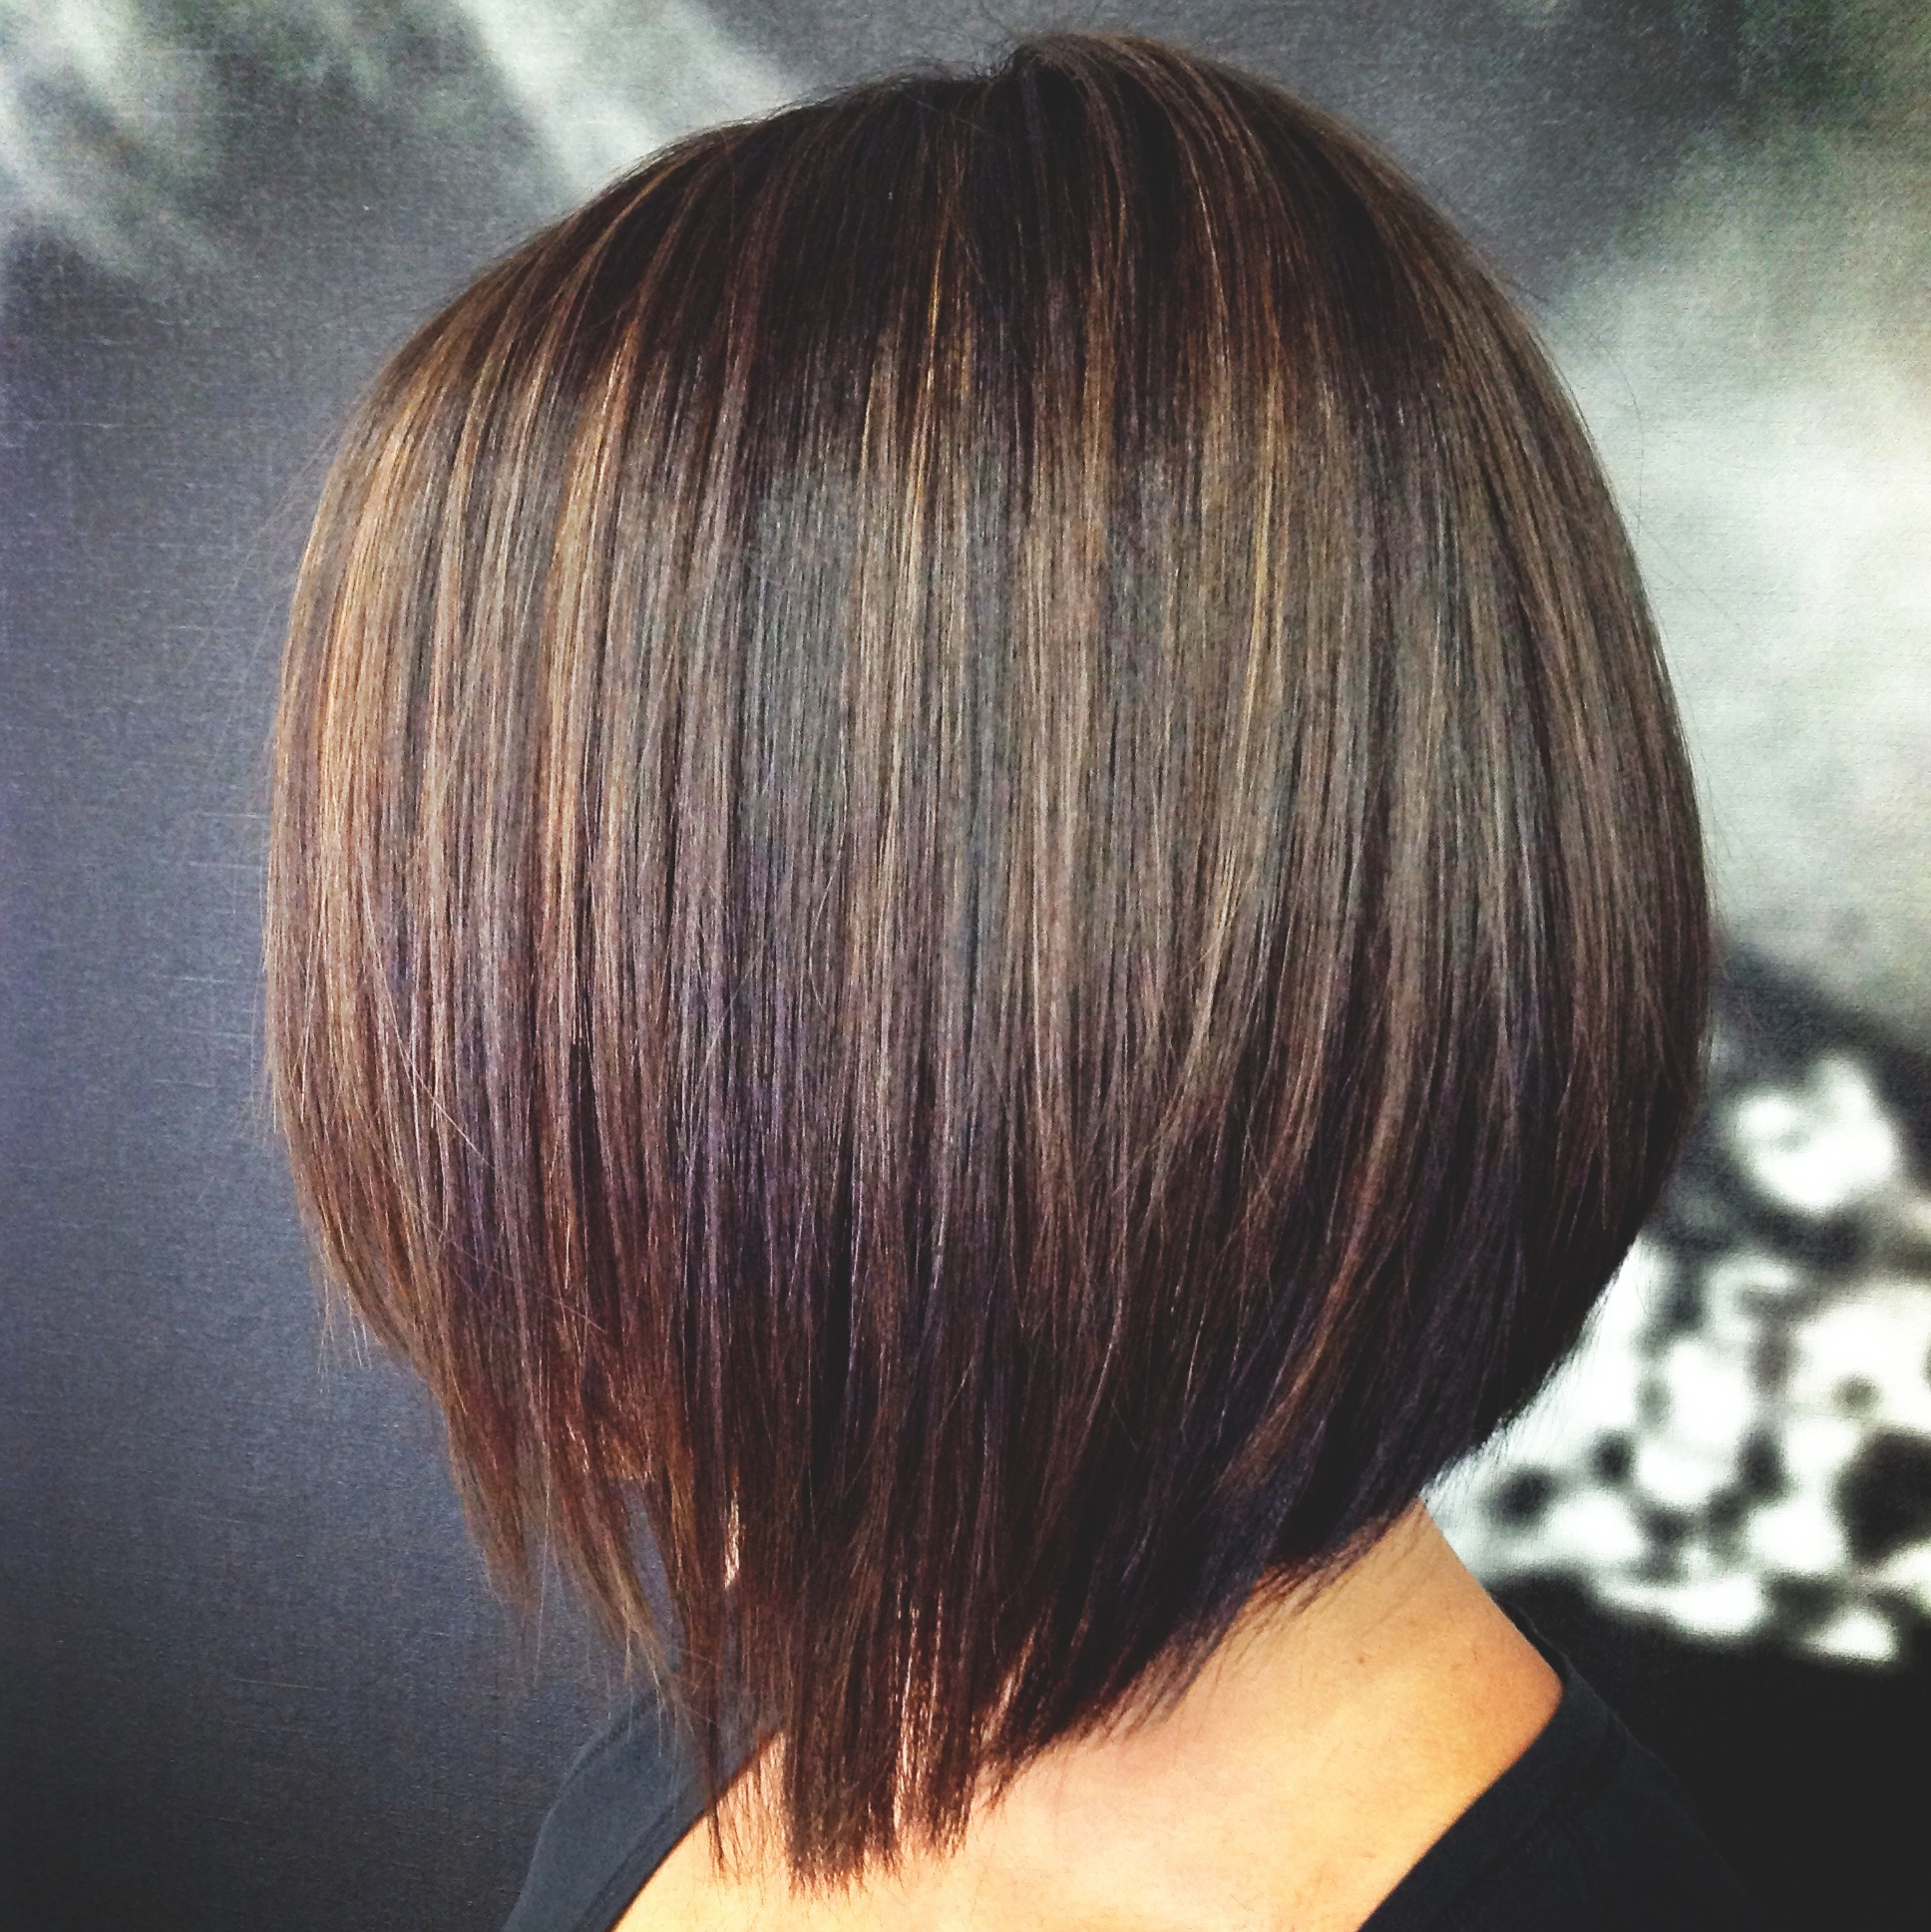 Remarkable Caramel Bob Hairstyles With 20 Short Hairstyles For Girls For Soft Brown And Caramel Wavy Bob Hairstyles (View 15 of 20)